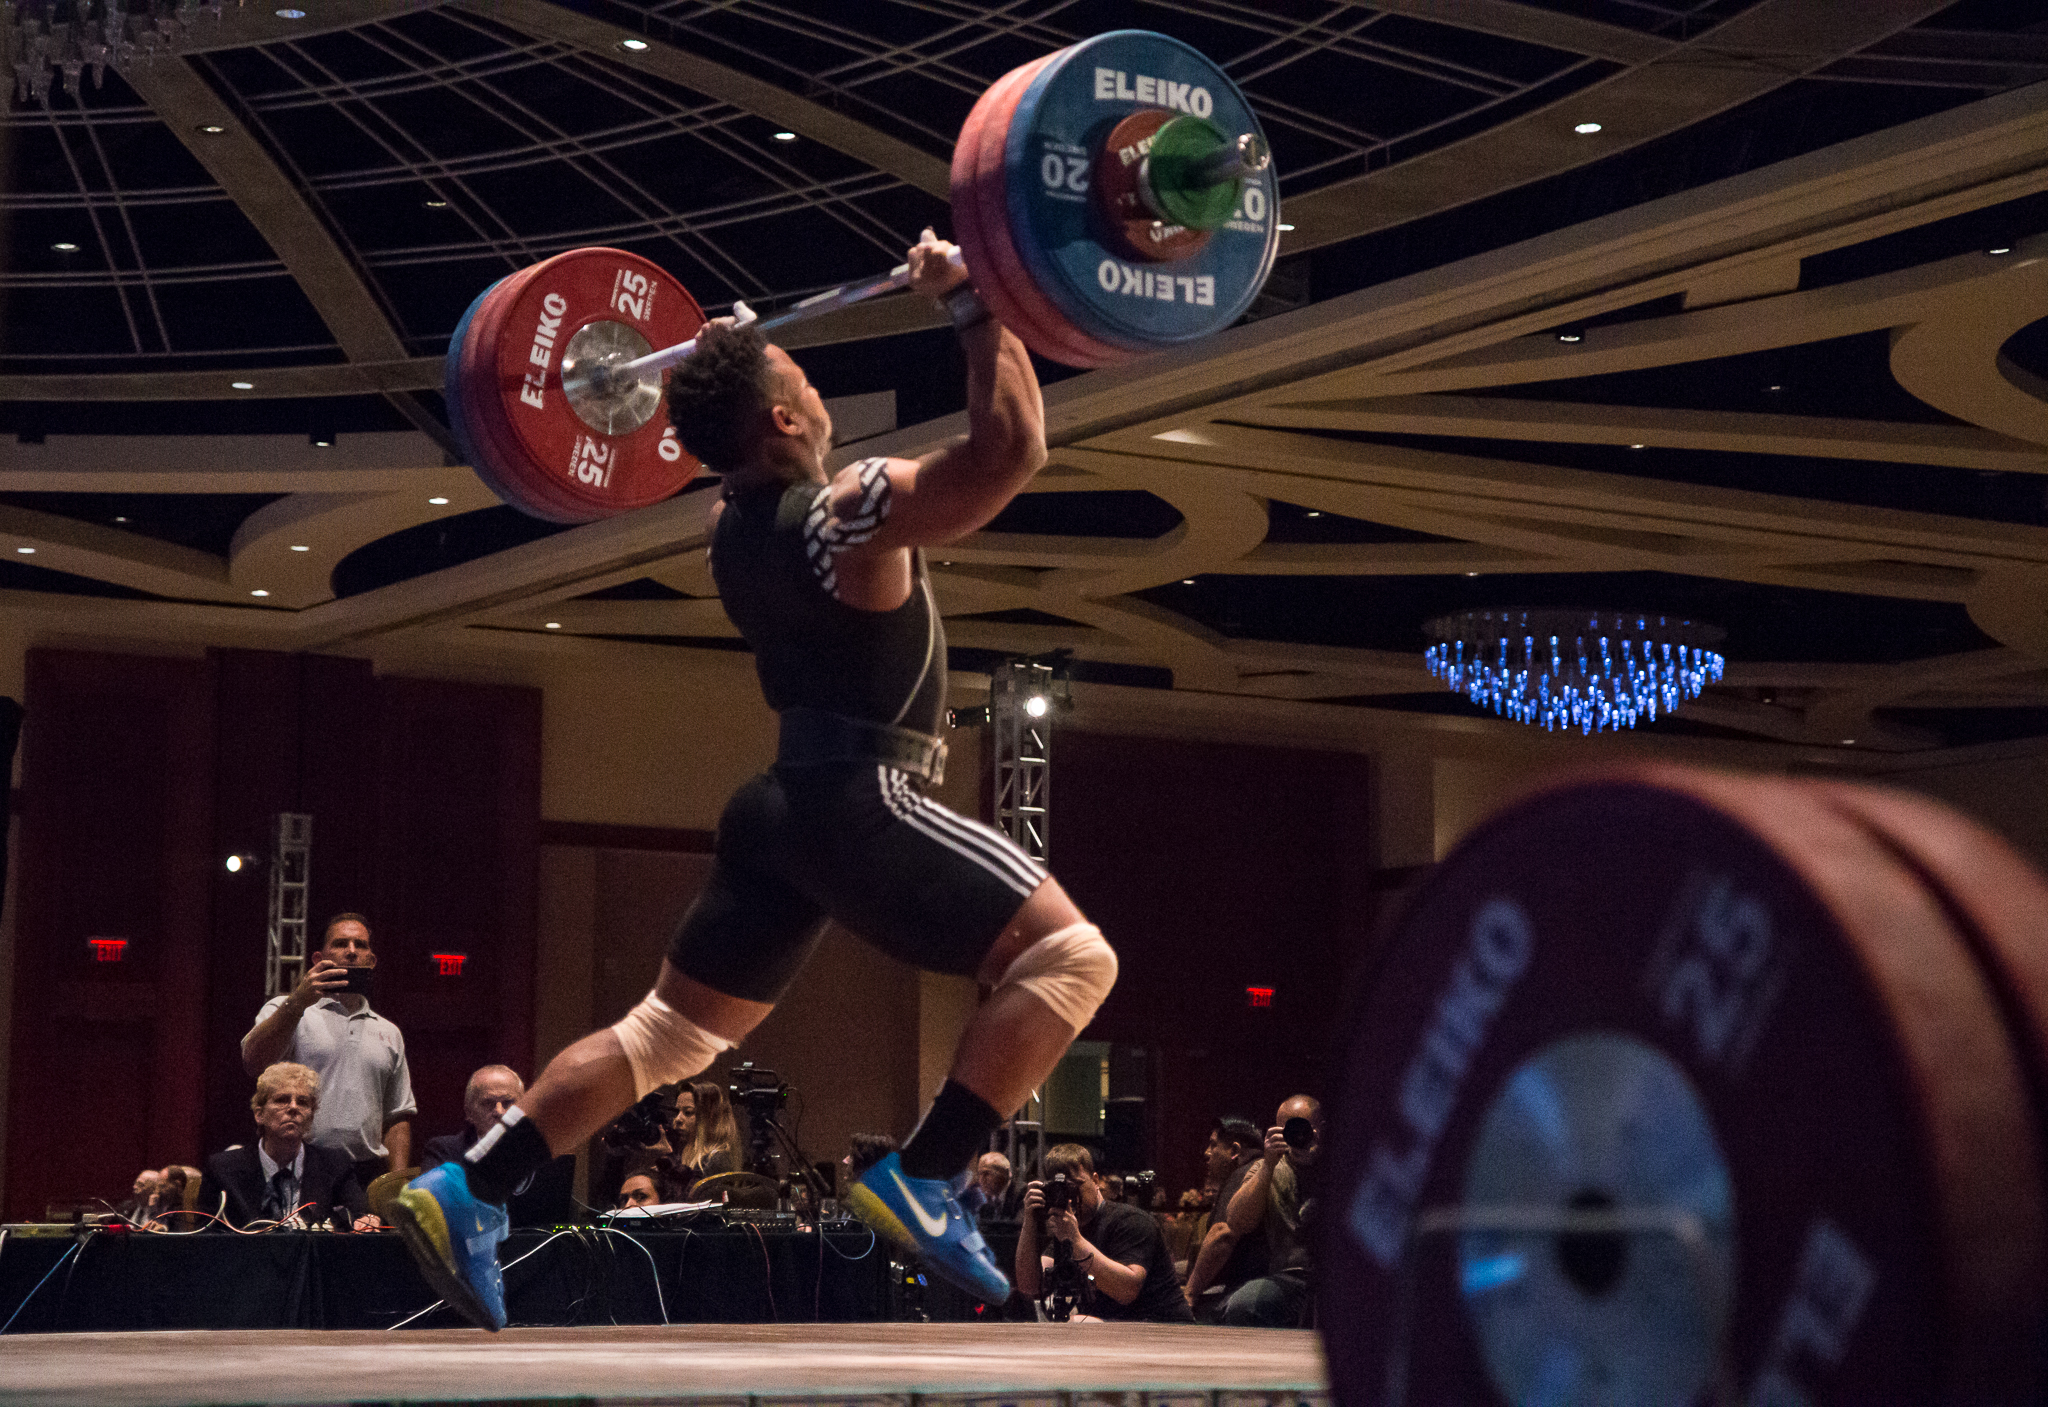 session-a-favorites-american-open-2016-weightlifting-photography (27 of 38).jpg